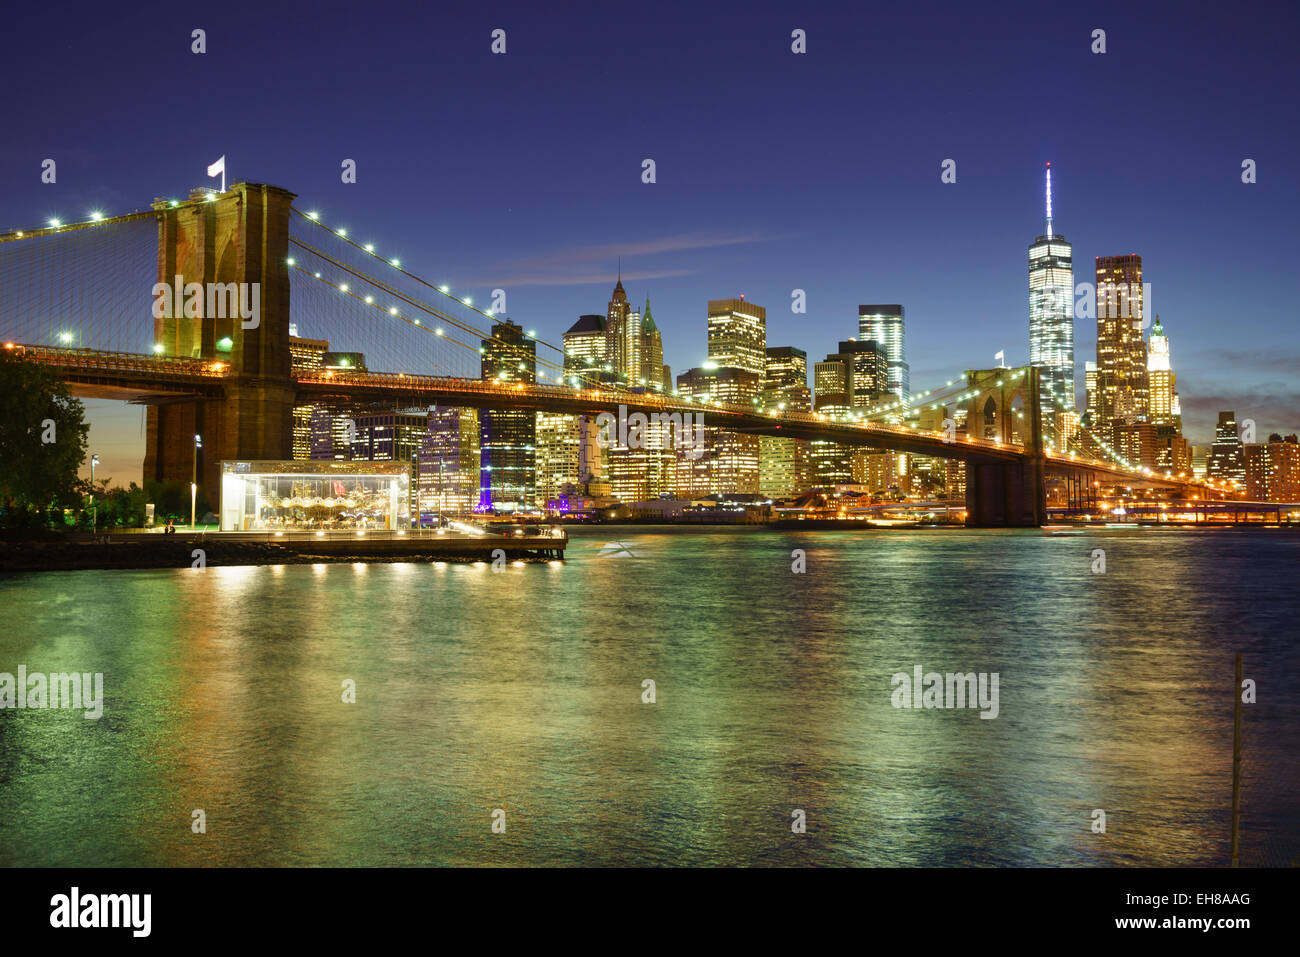 Pont de Brooklyn et Manhattan skyline at night, New York City, New York, États-Unis d'Amérique, Amérique Photo Stock